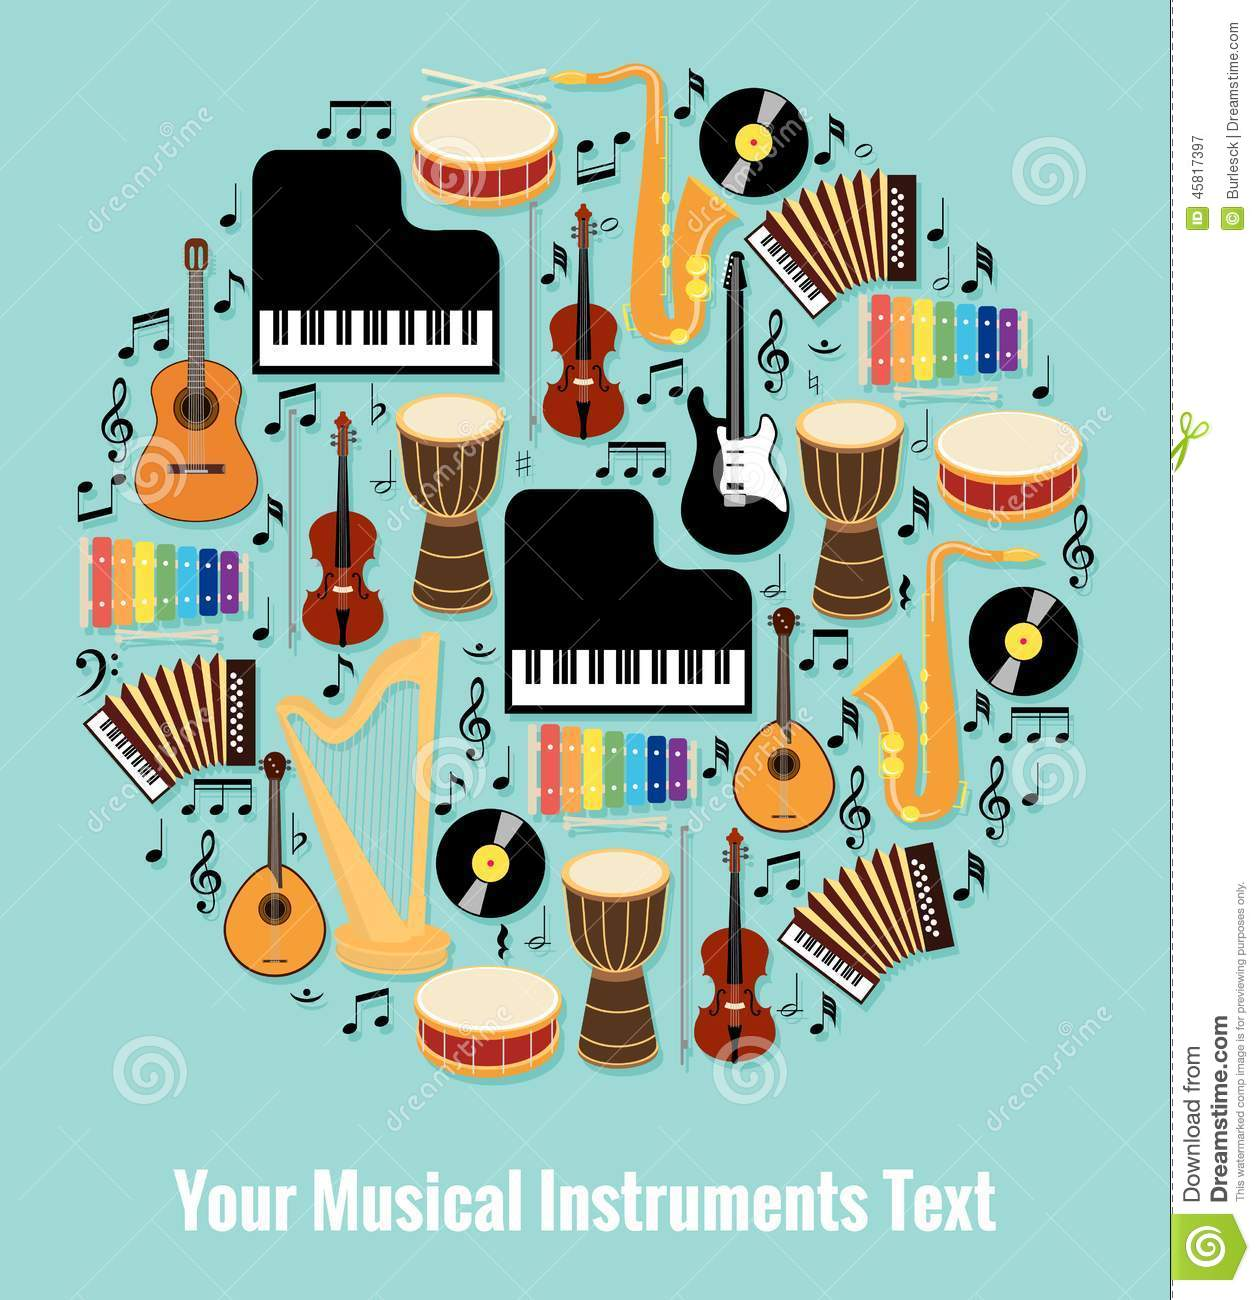 Assorted Musical Instruments Design with Text Area